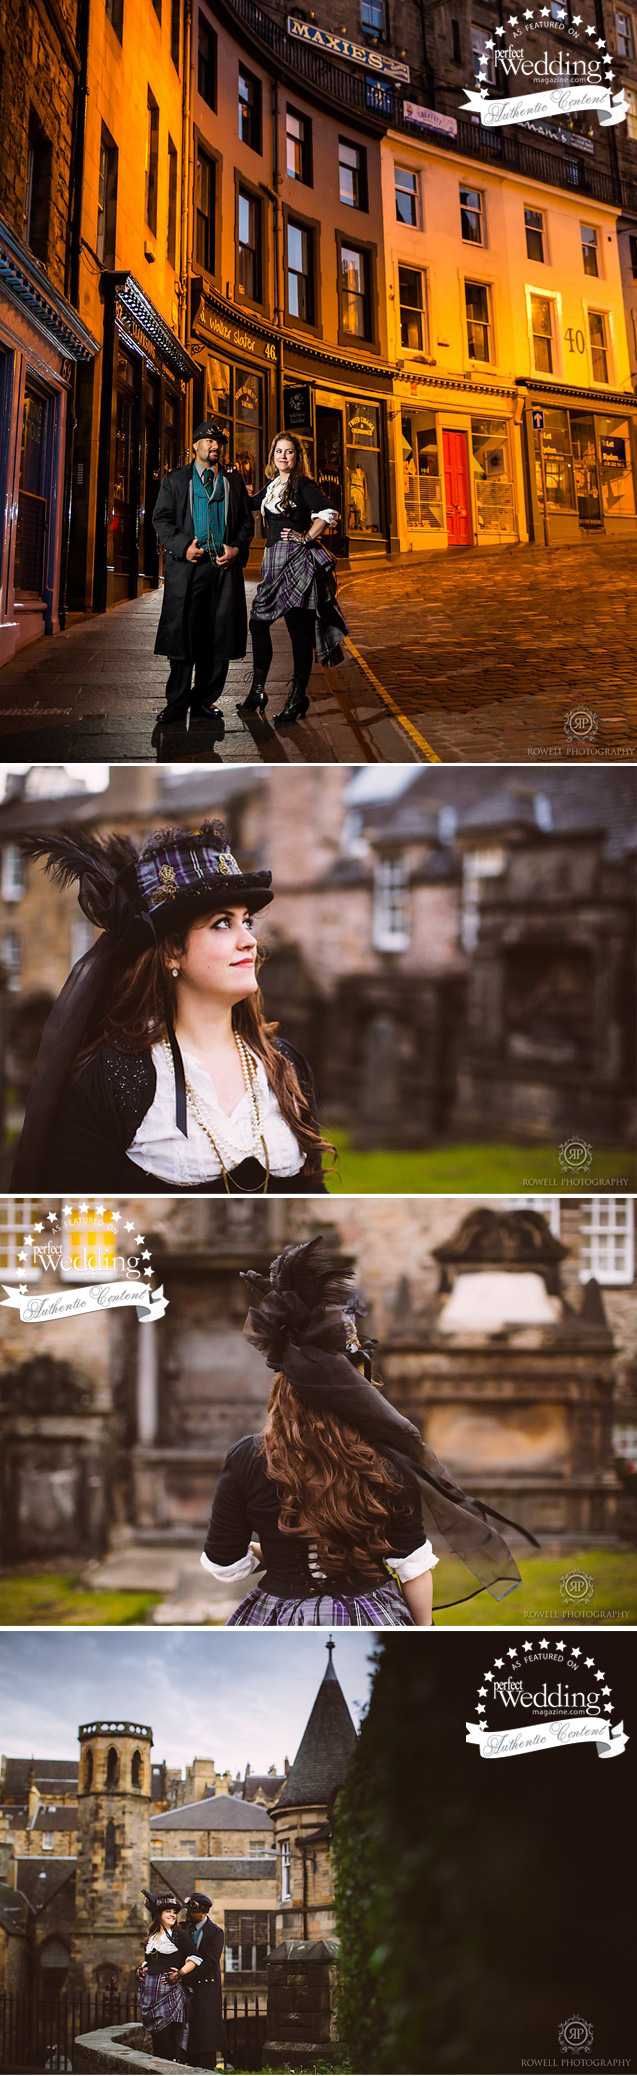 Scotland Anniversary Wedding Portrait, Rowell Photo, Perfect Wedding magazine, Scotland